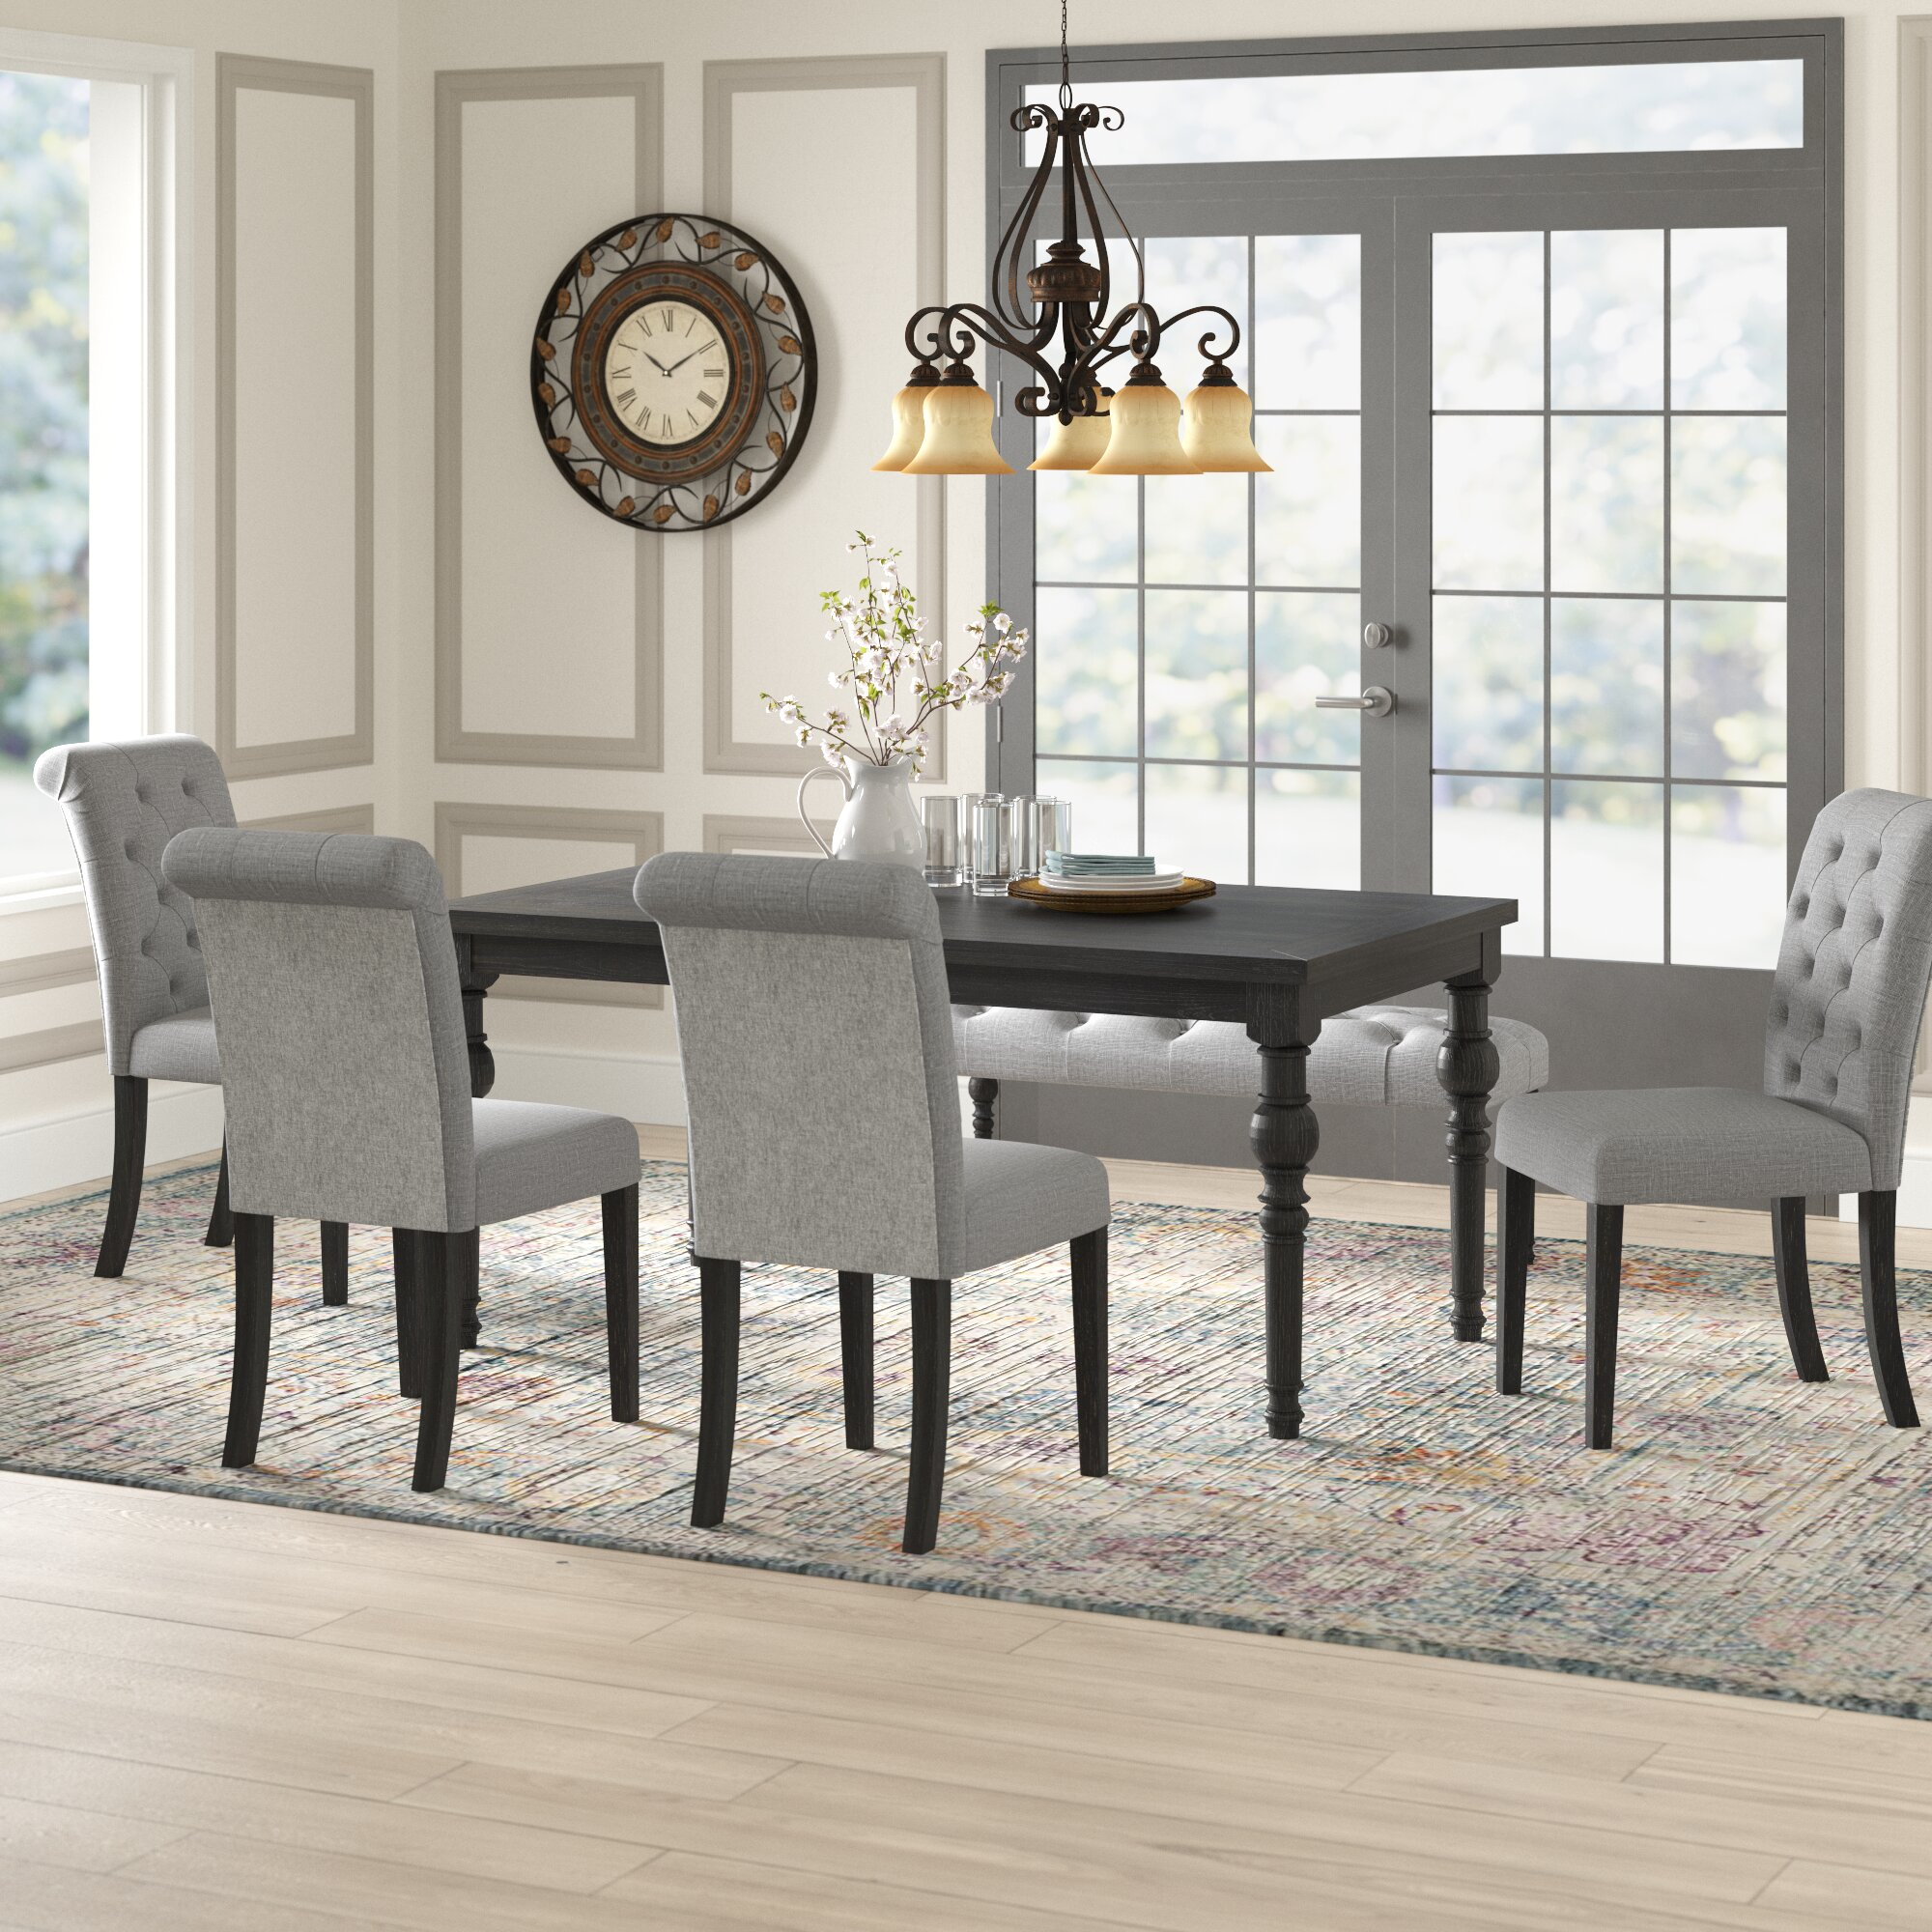 chicago dining table fantastic furniture